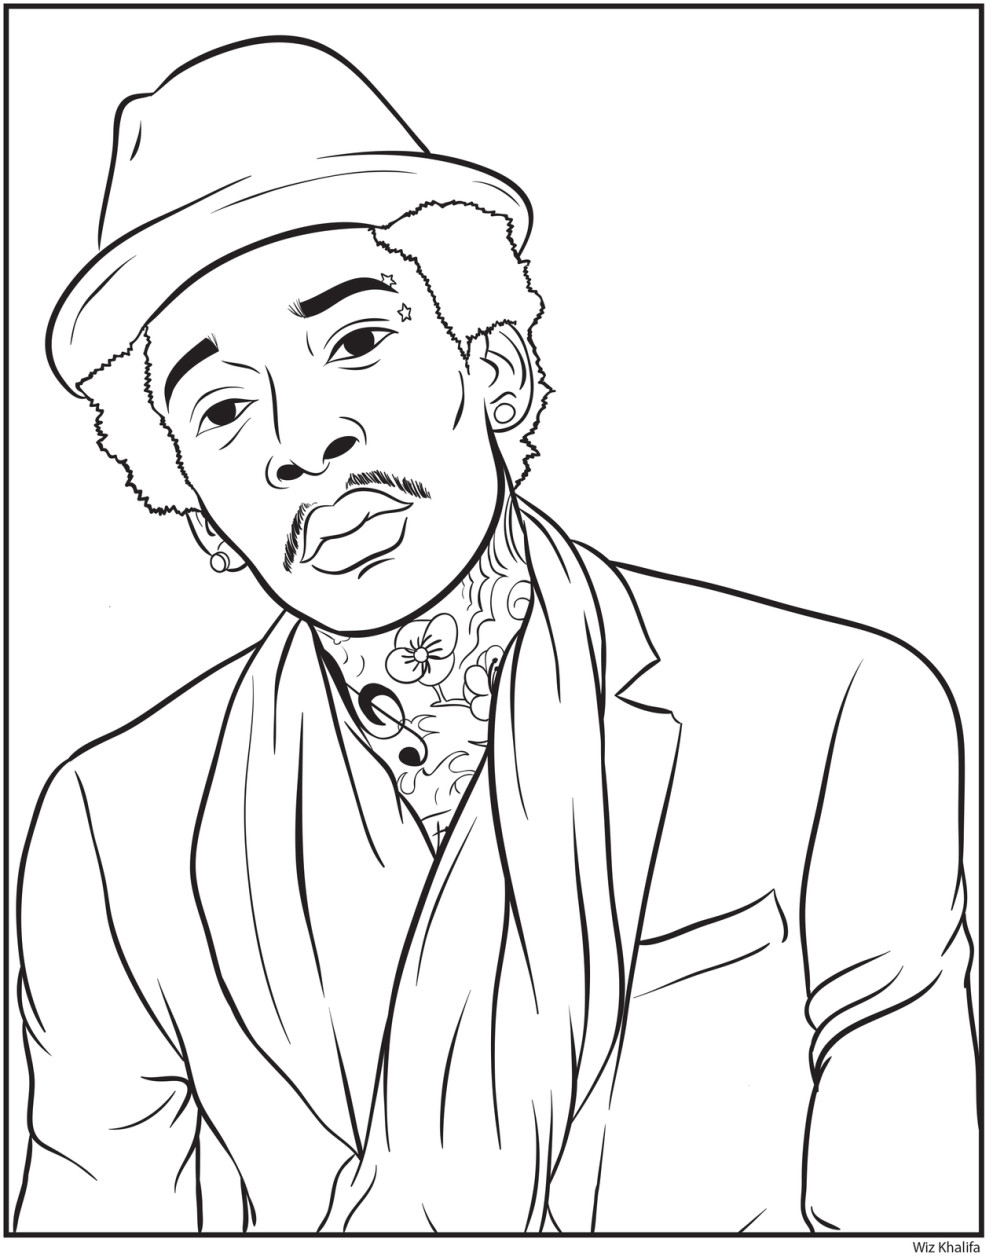 Free Coloring Pages Of Rappers Draw Coloring Pages To Draw